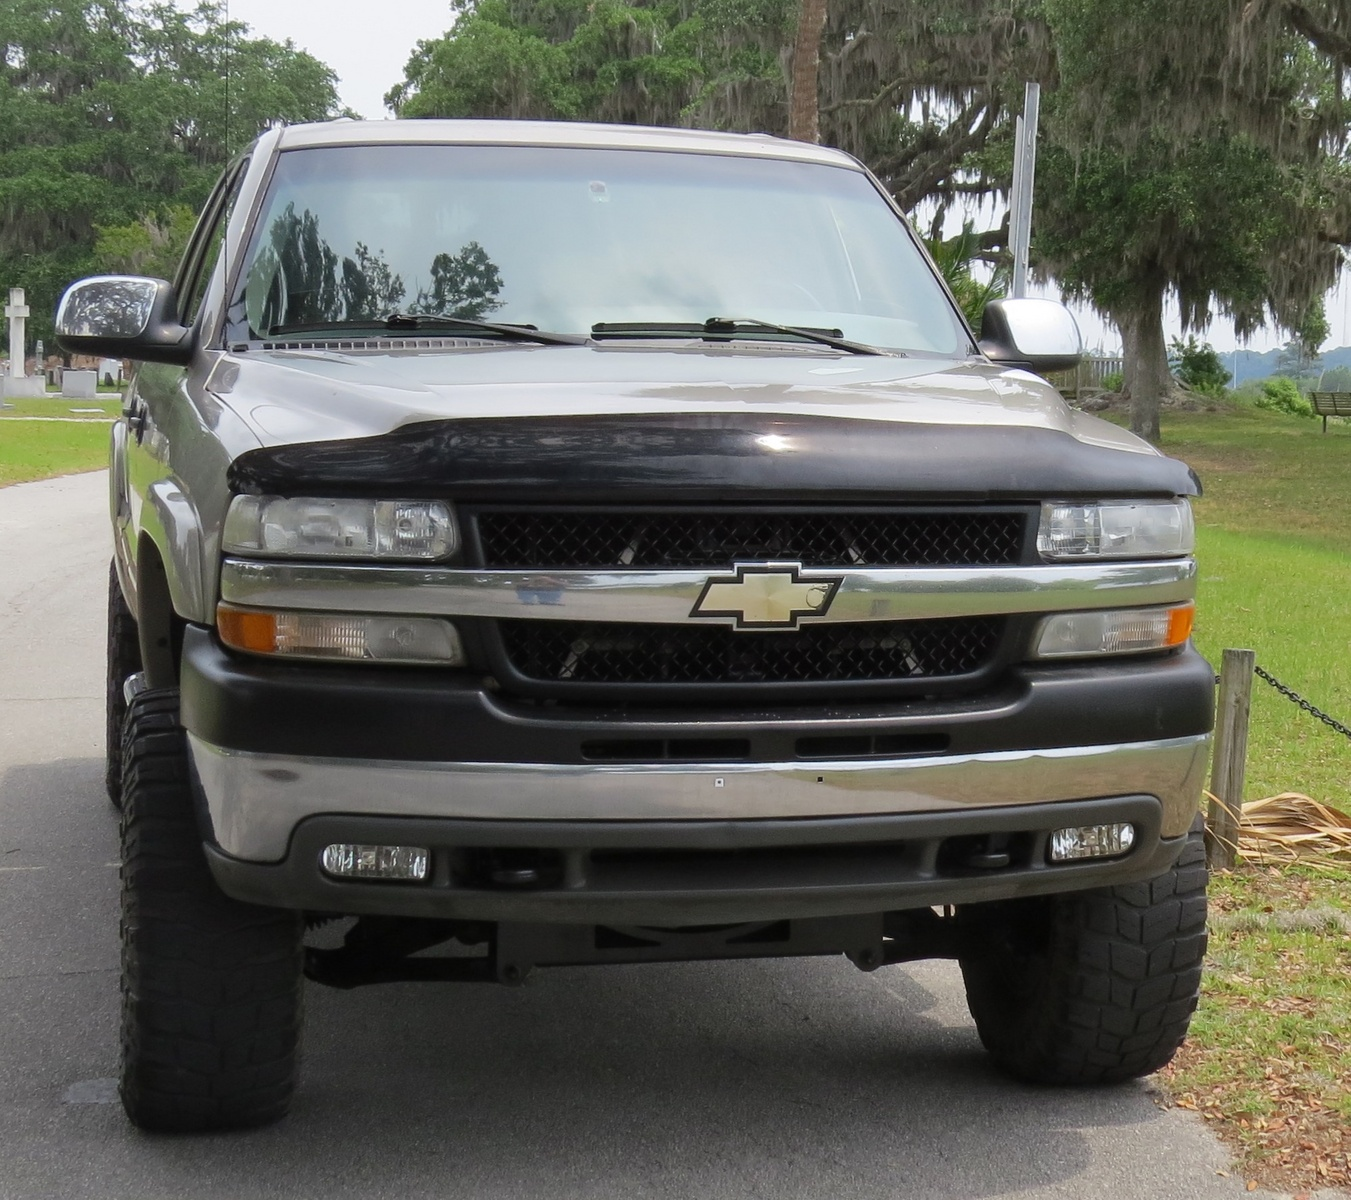 2002 Chevrolet Silverado 2500HD 4 Dr LT 4WD Extended Cab